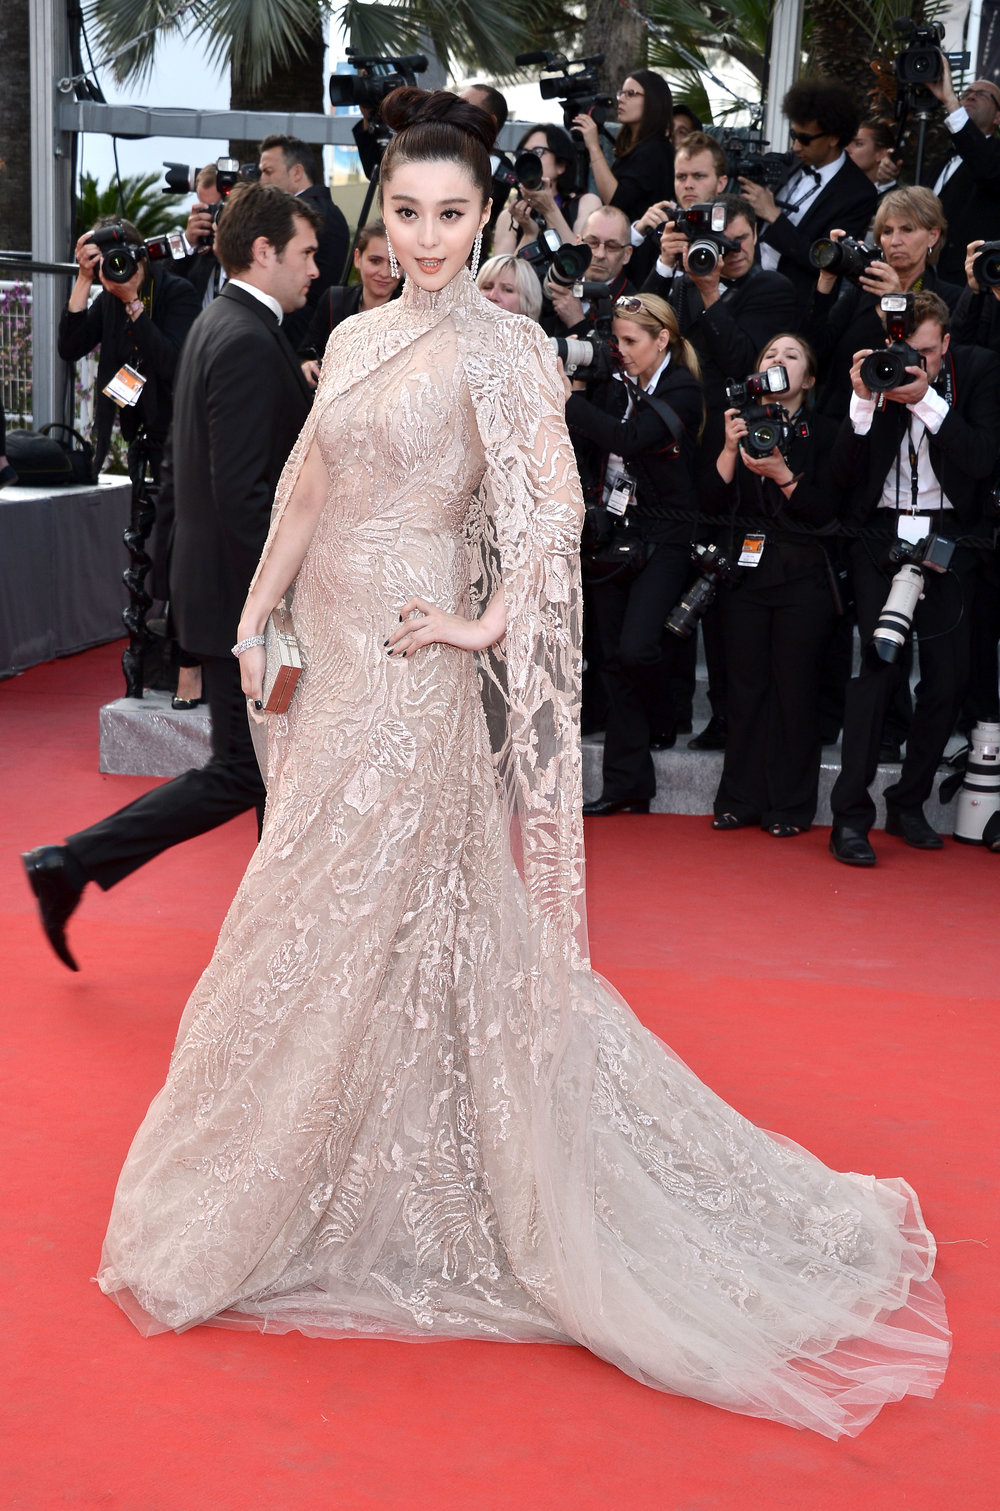 SOURCE:  https://www.wmagazine.com/gallery/fan-bingbing-queen-of-the-red-carpet/all